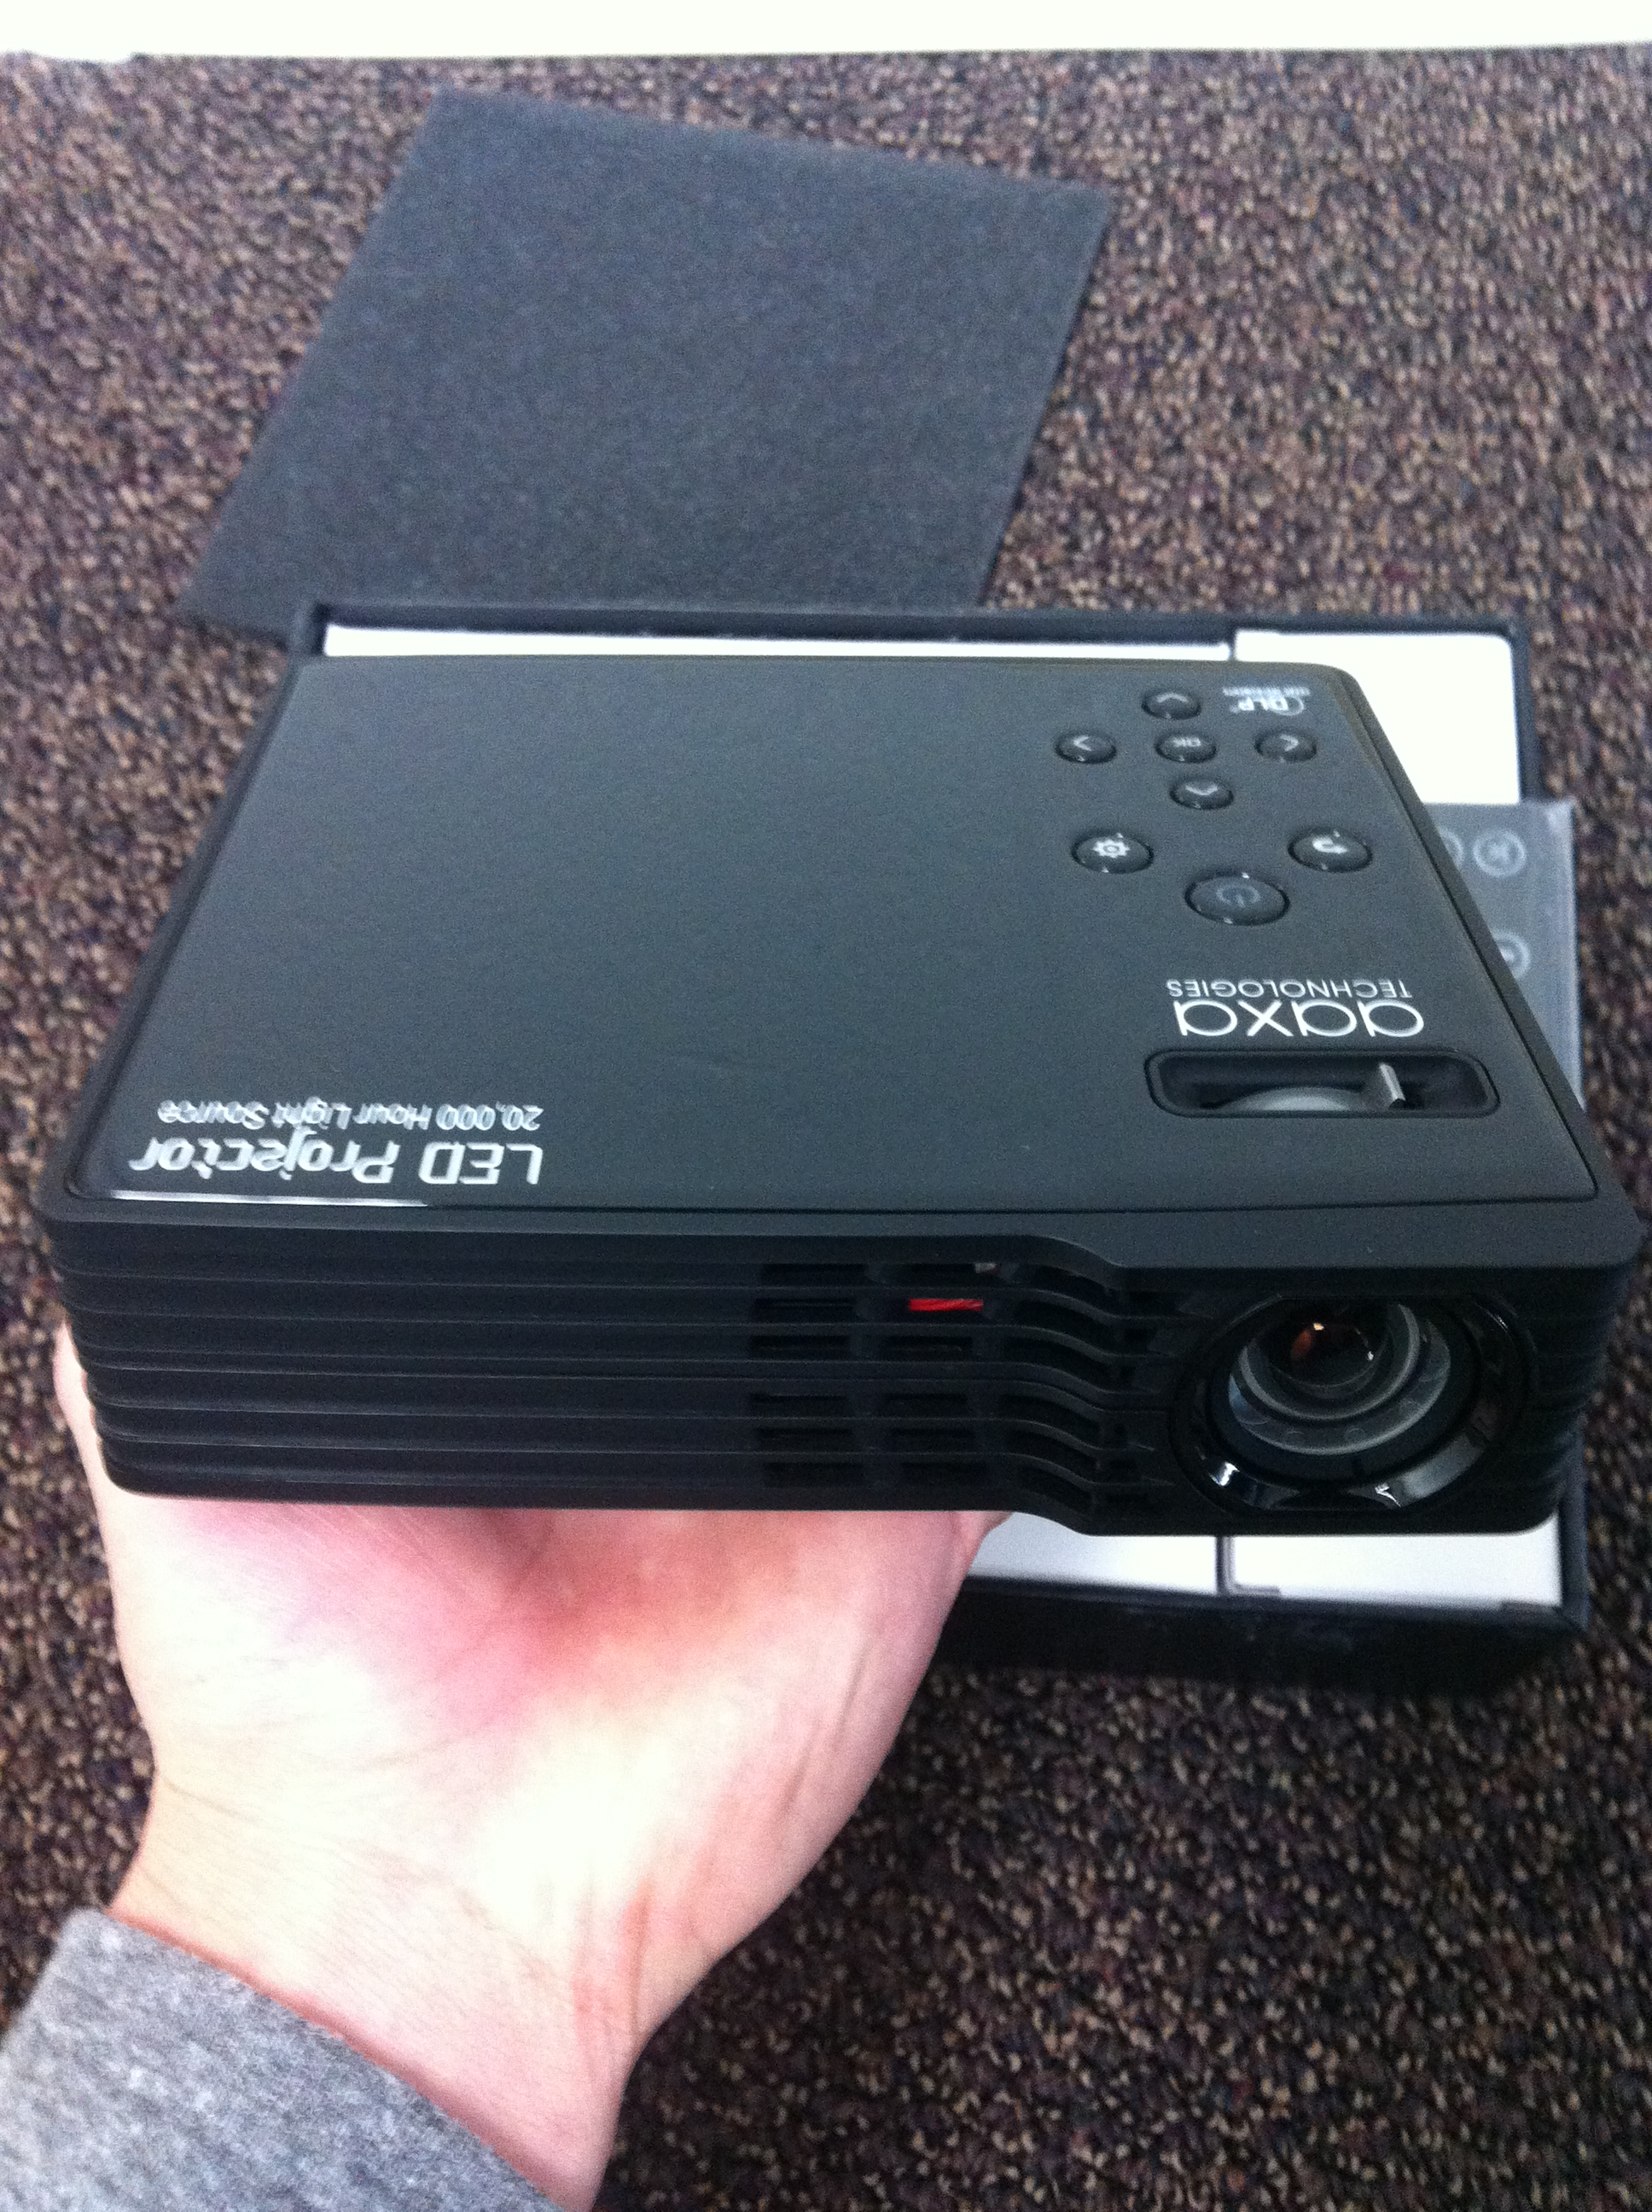 Aaxa led showtime 3d micro projector review pico for Micro projector reviews